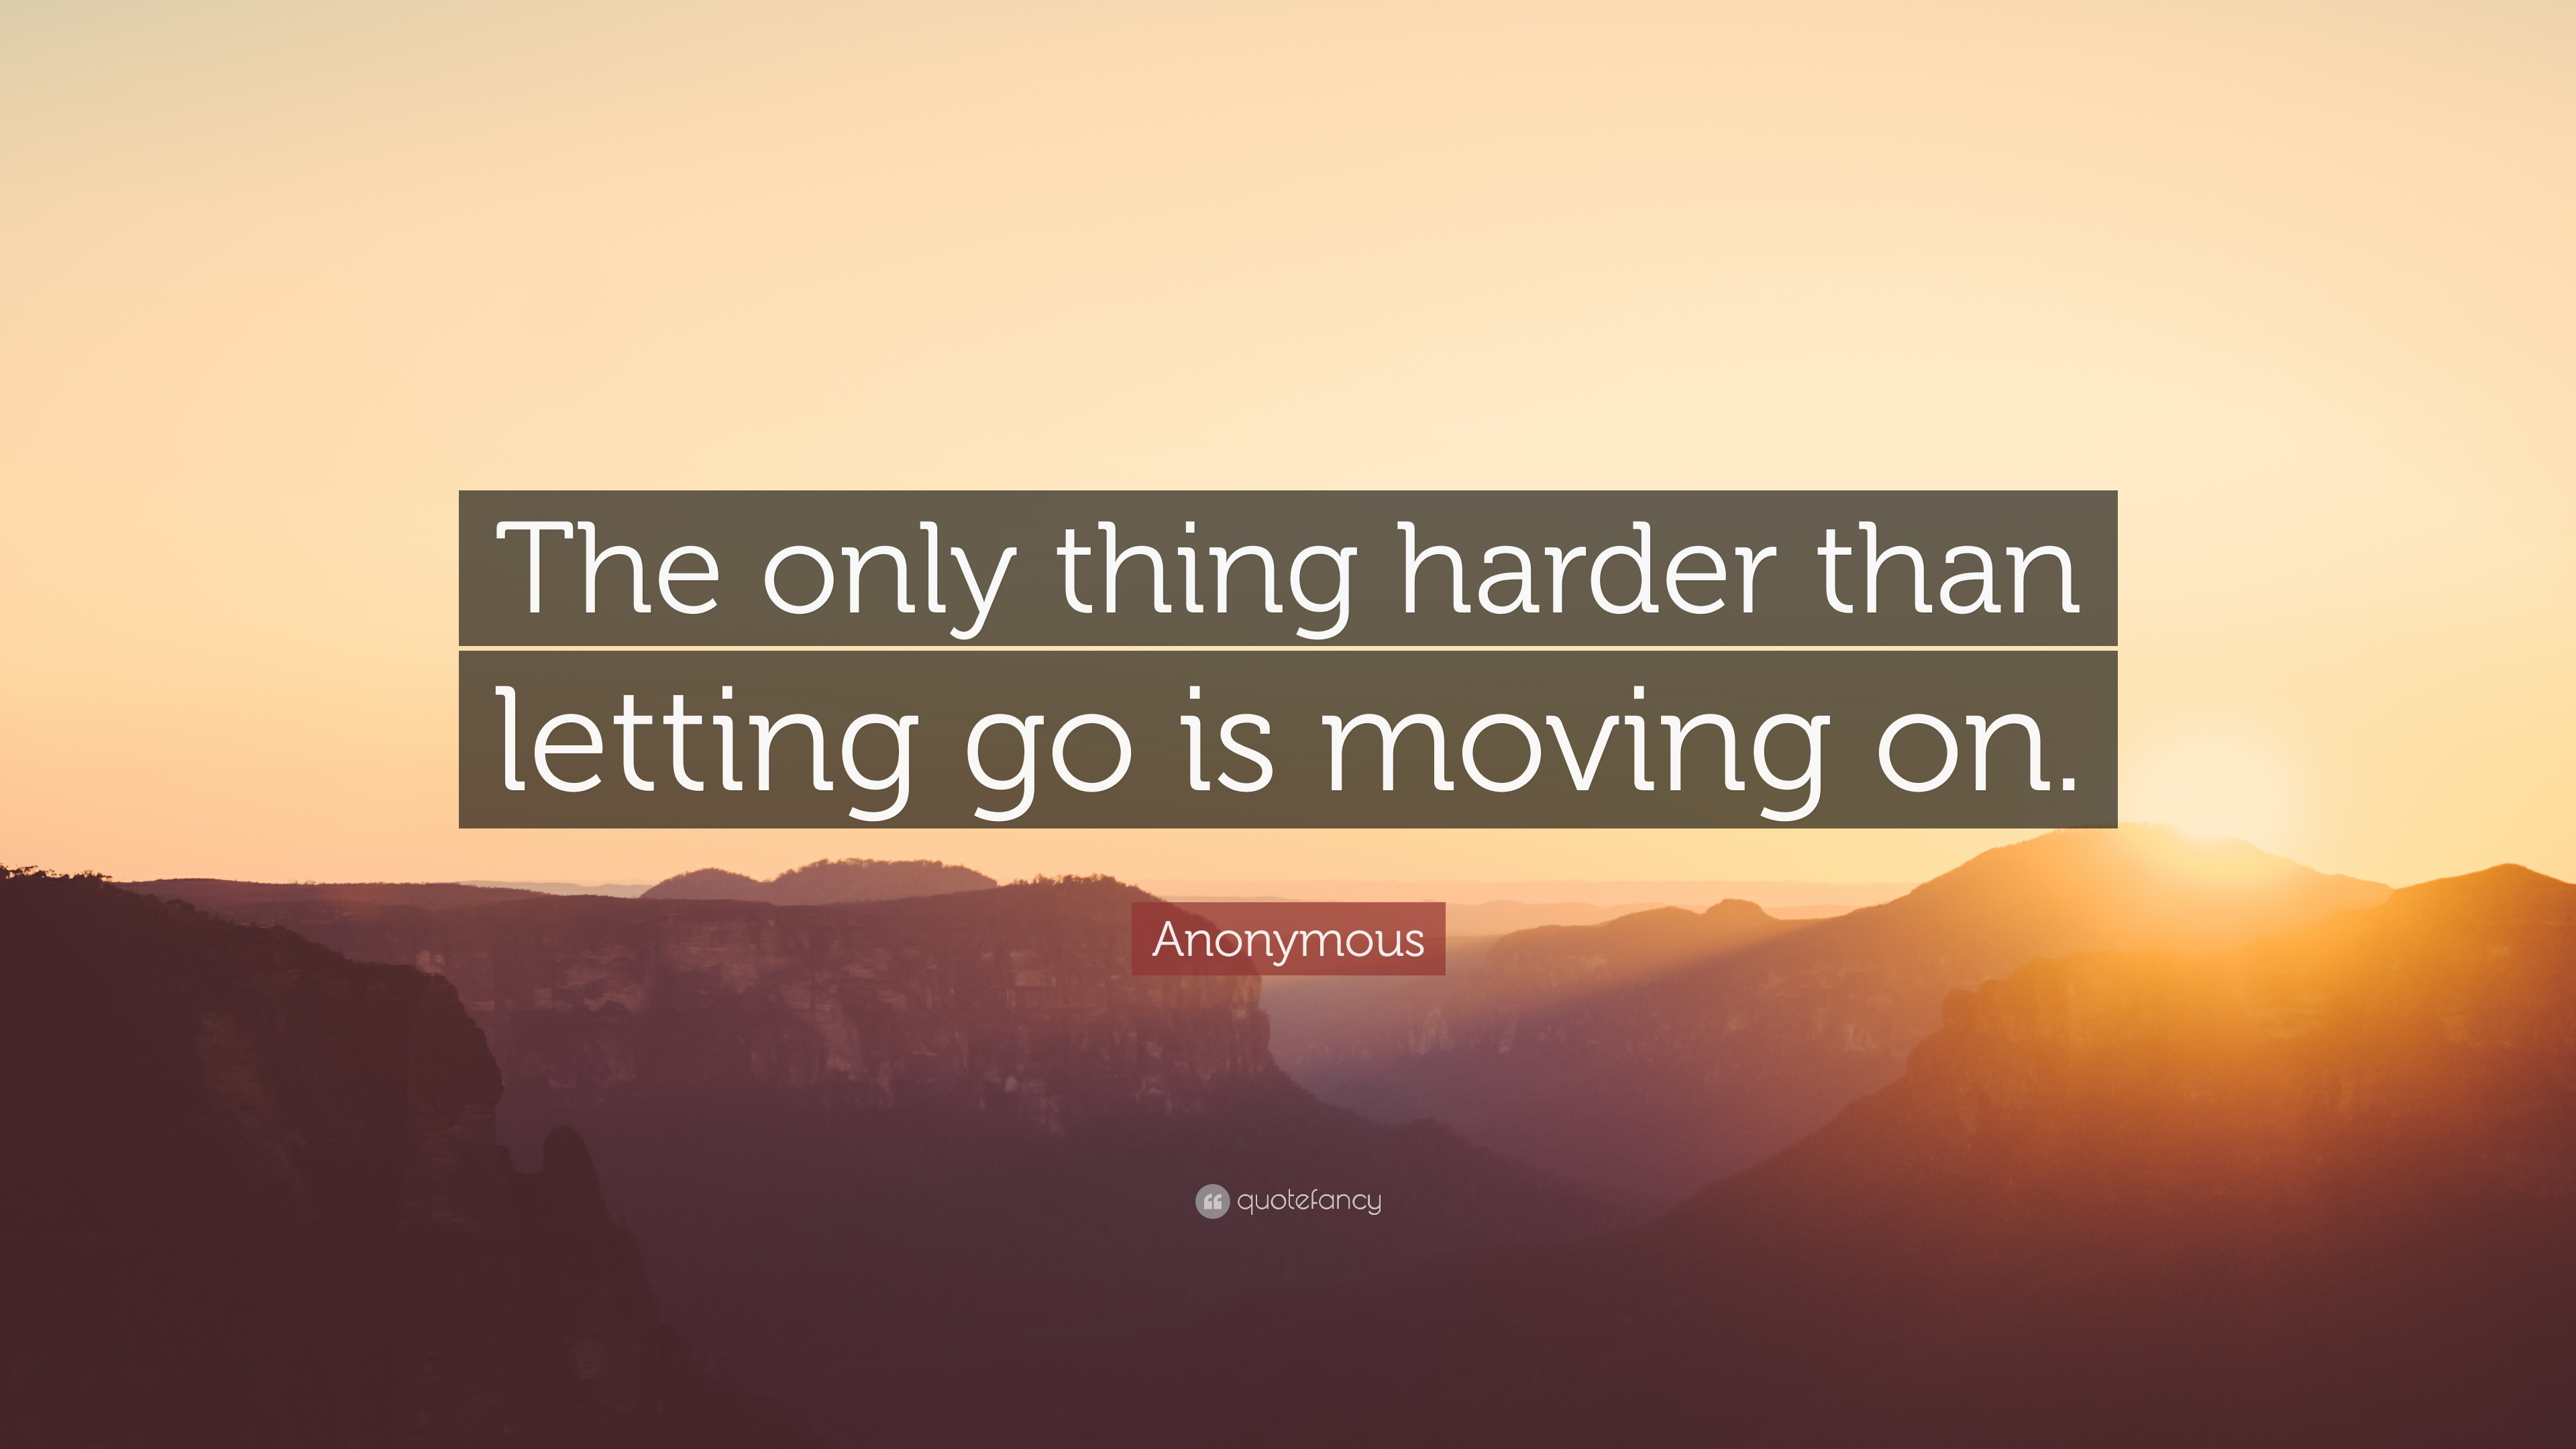 Quotes About Moving On Moving On Quotes 56 Wallpapers  Quotefancy